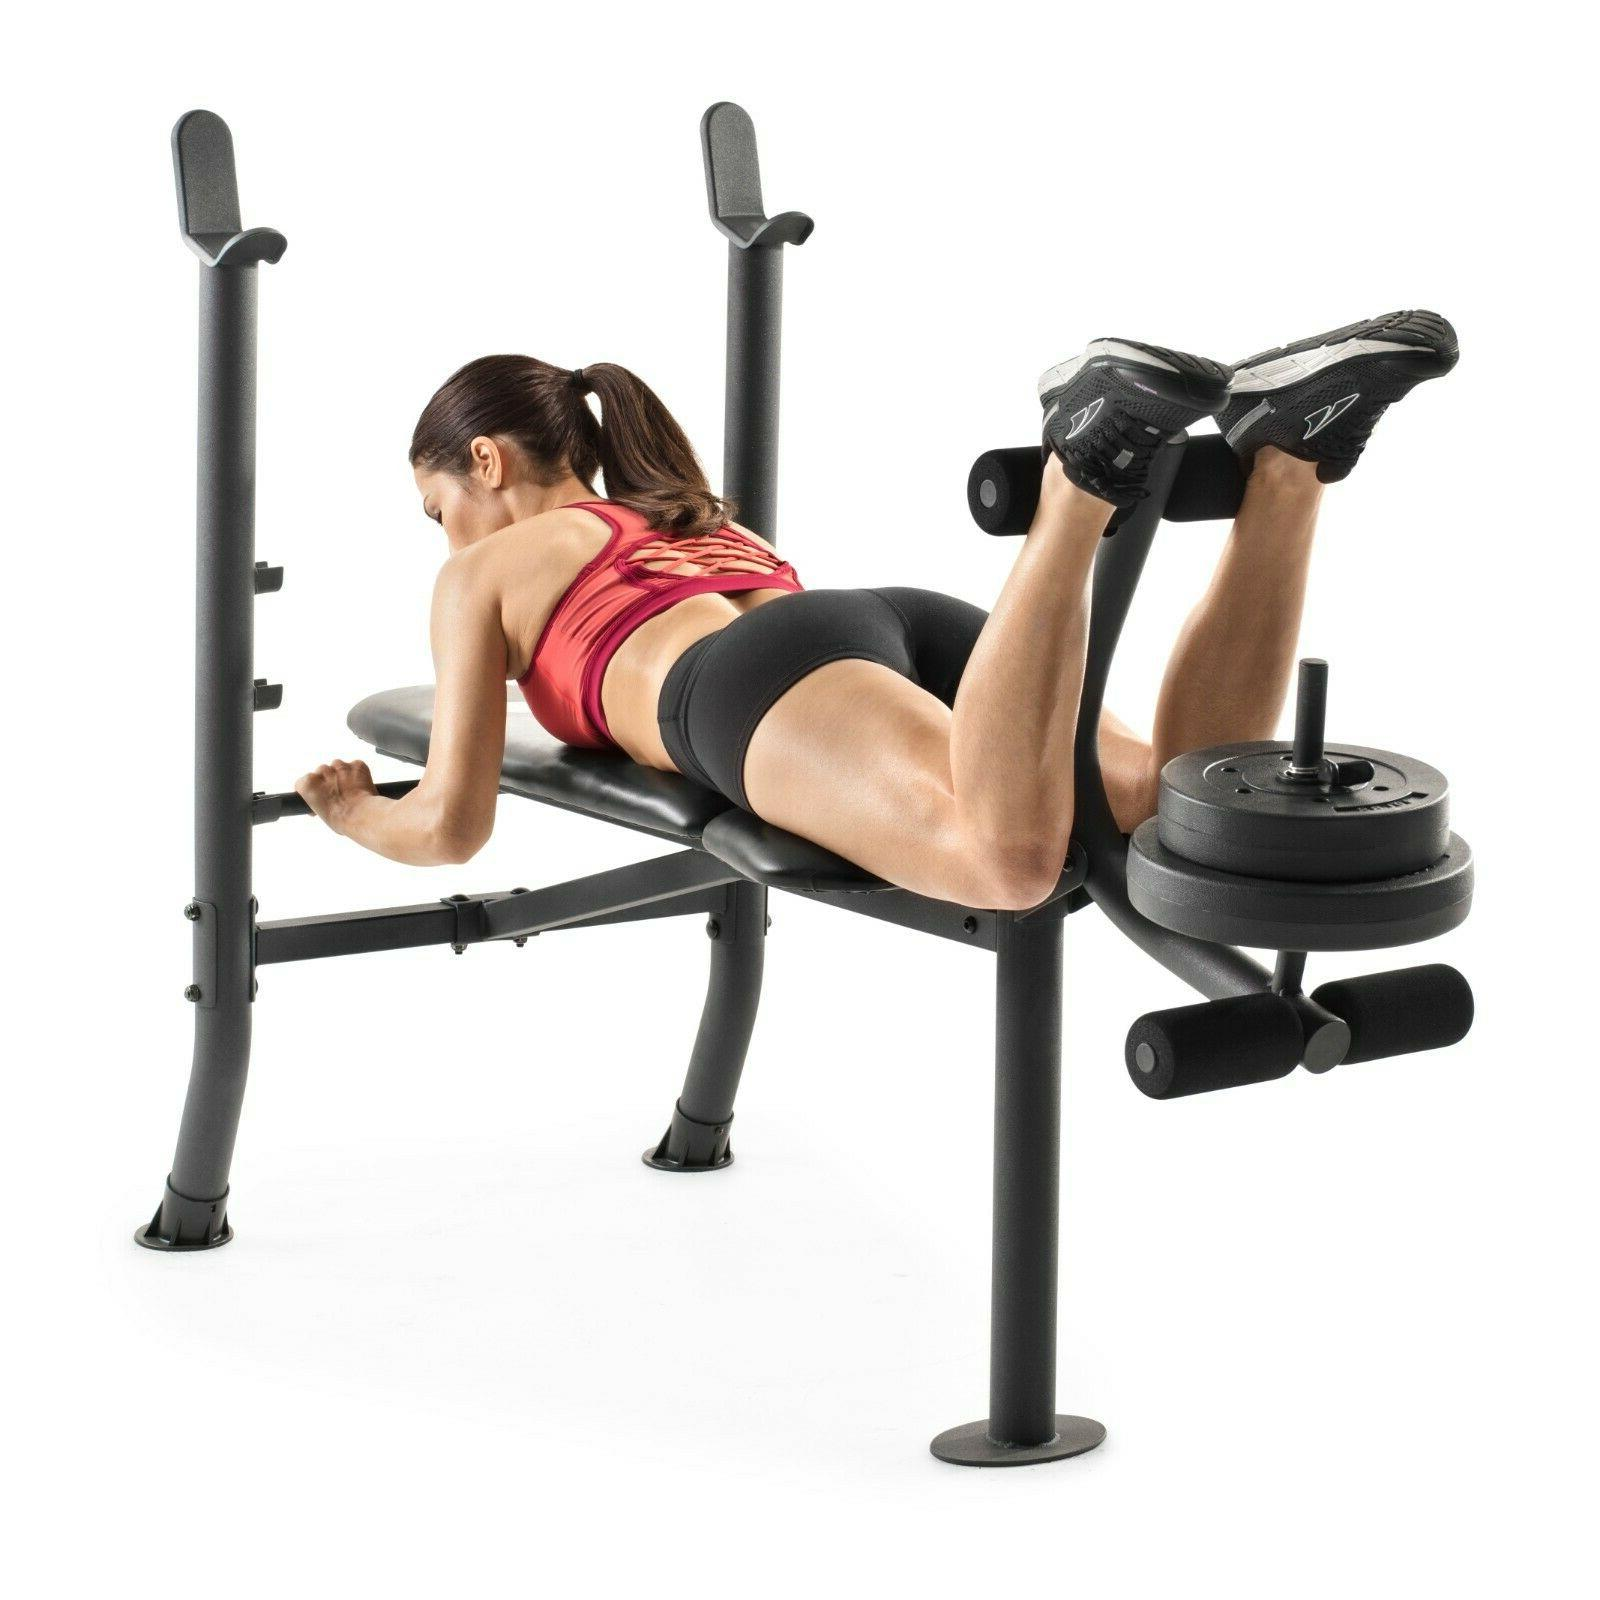 Fitness Weight Set Gym Equipment Exercise Home